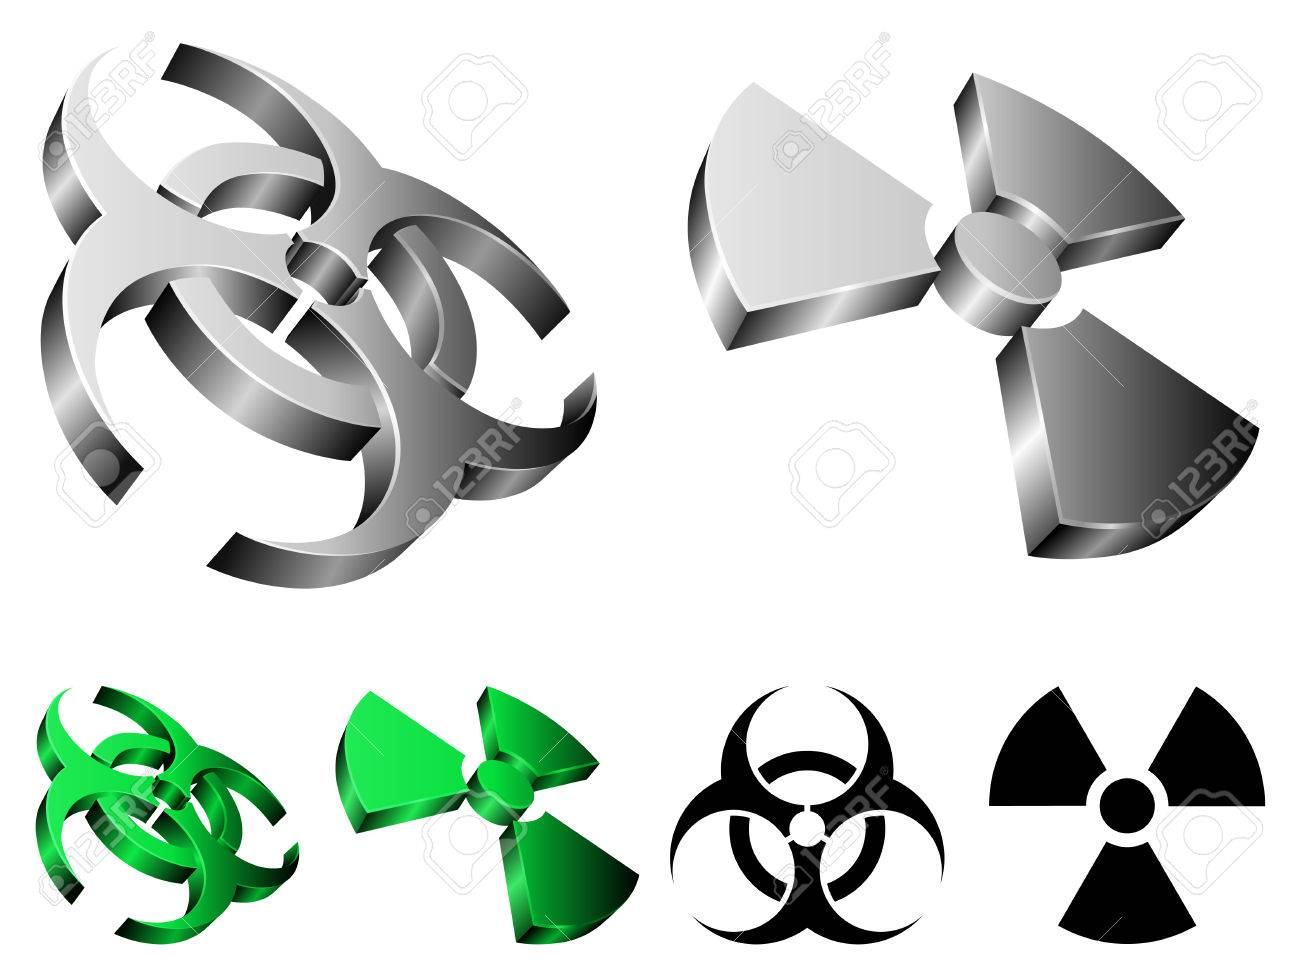 Biohazard and radiation signs. Stock Vector - 6402867